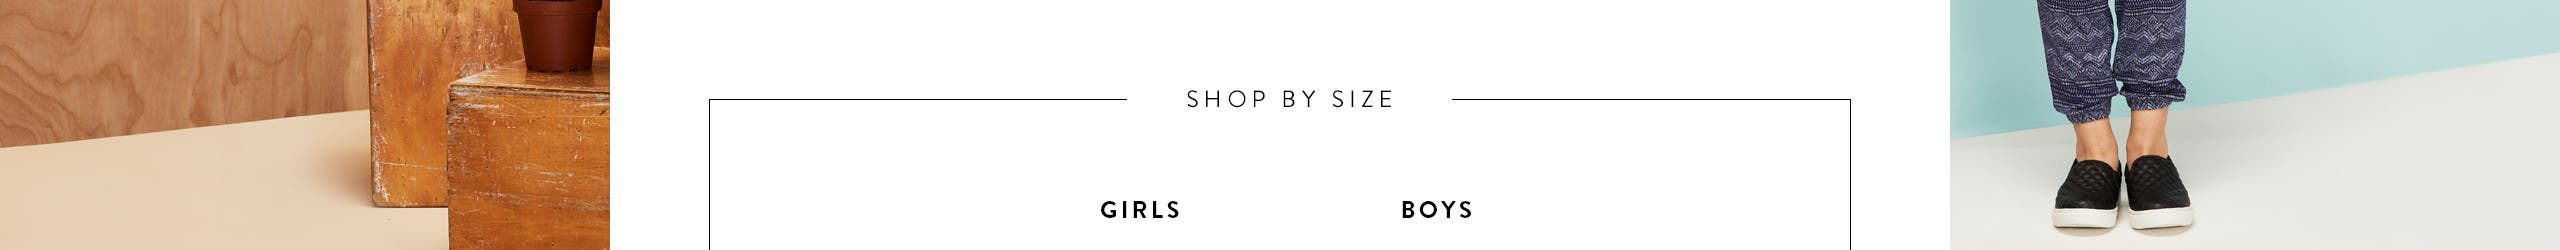 Shop by size for girls and boys.